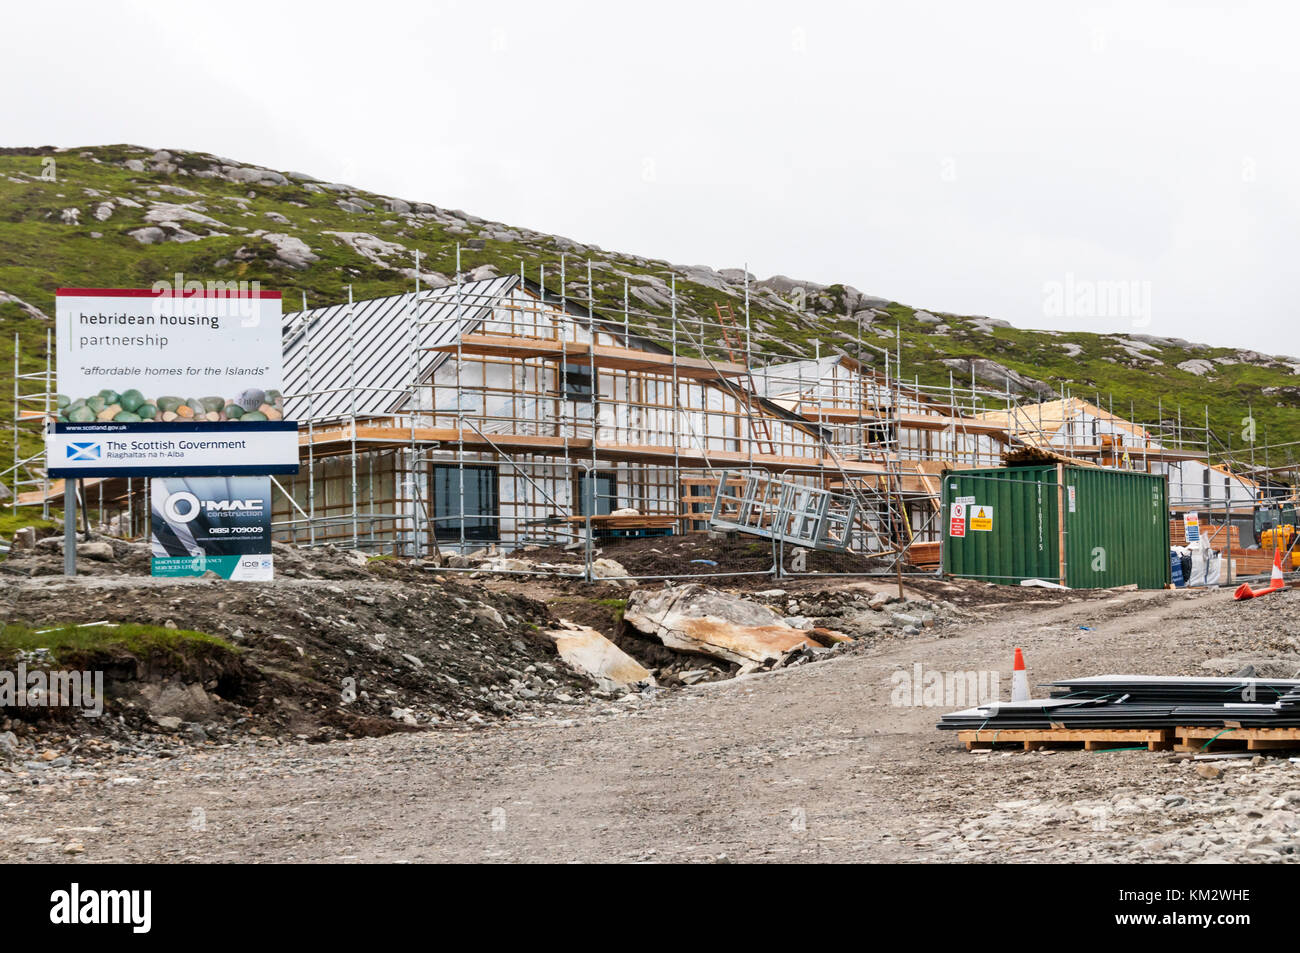 Affordable homes being built for Hebridean Housing Partnership at Pairc Niseaboist, Horgabost on the west coast - Stock Image